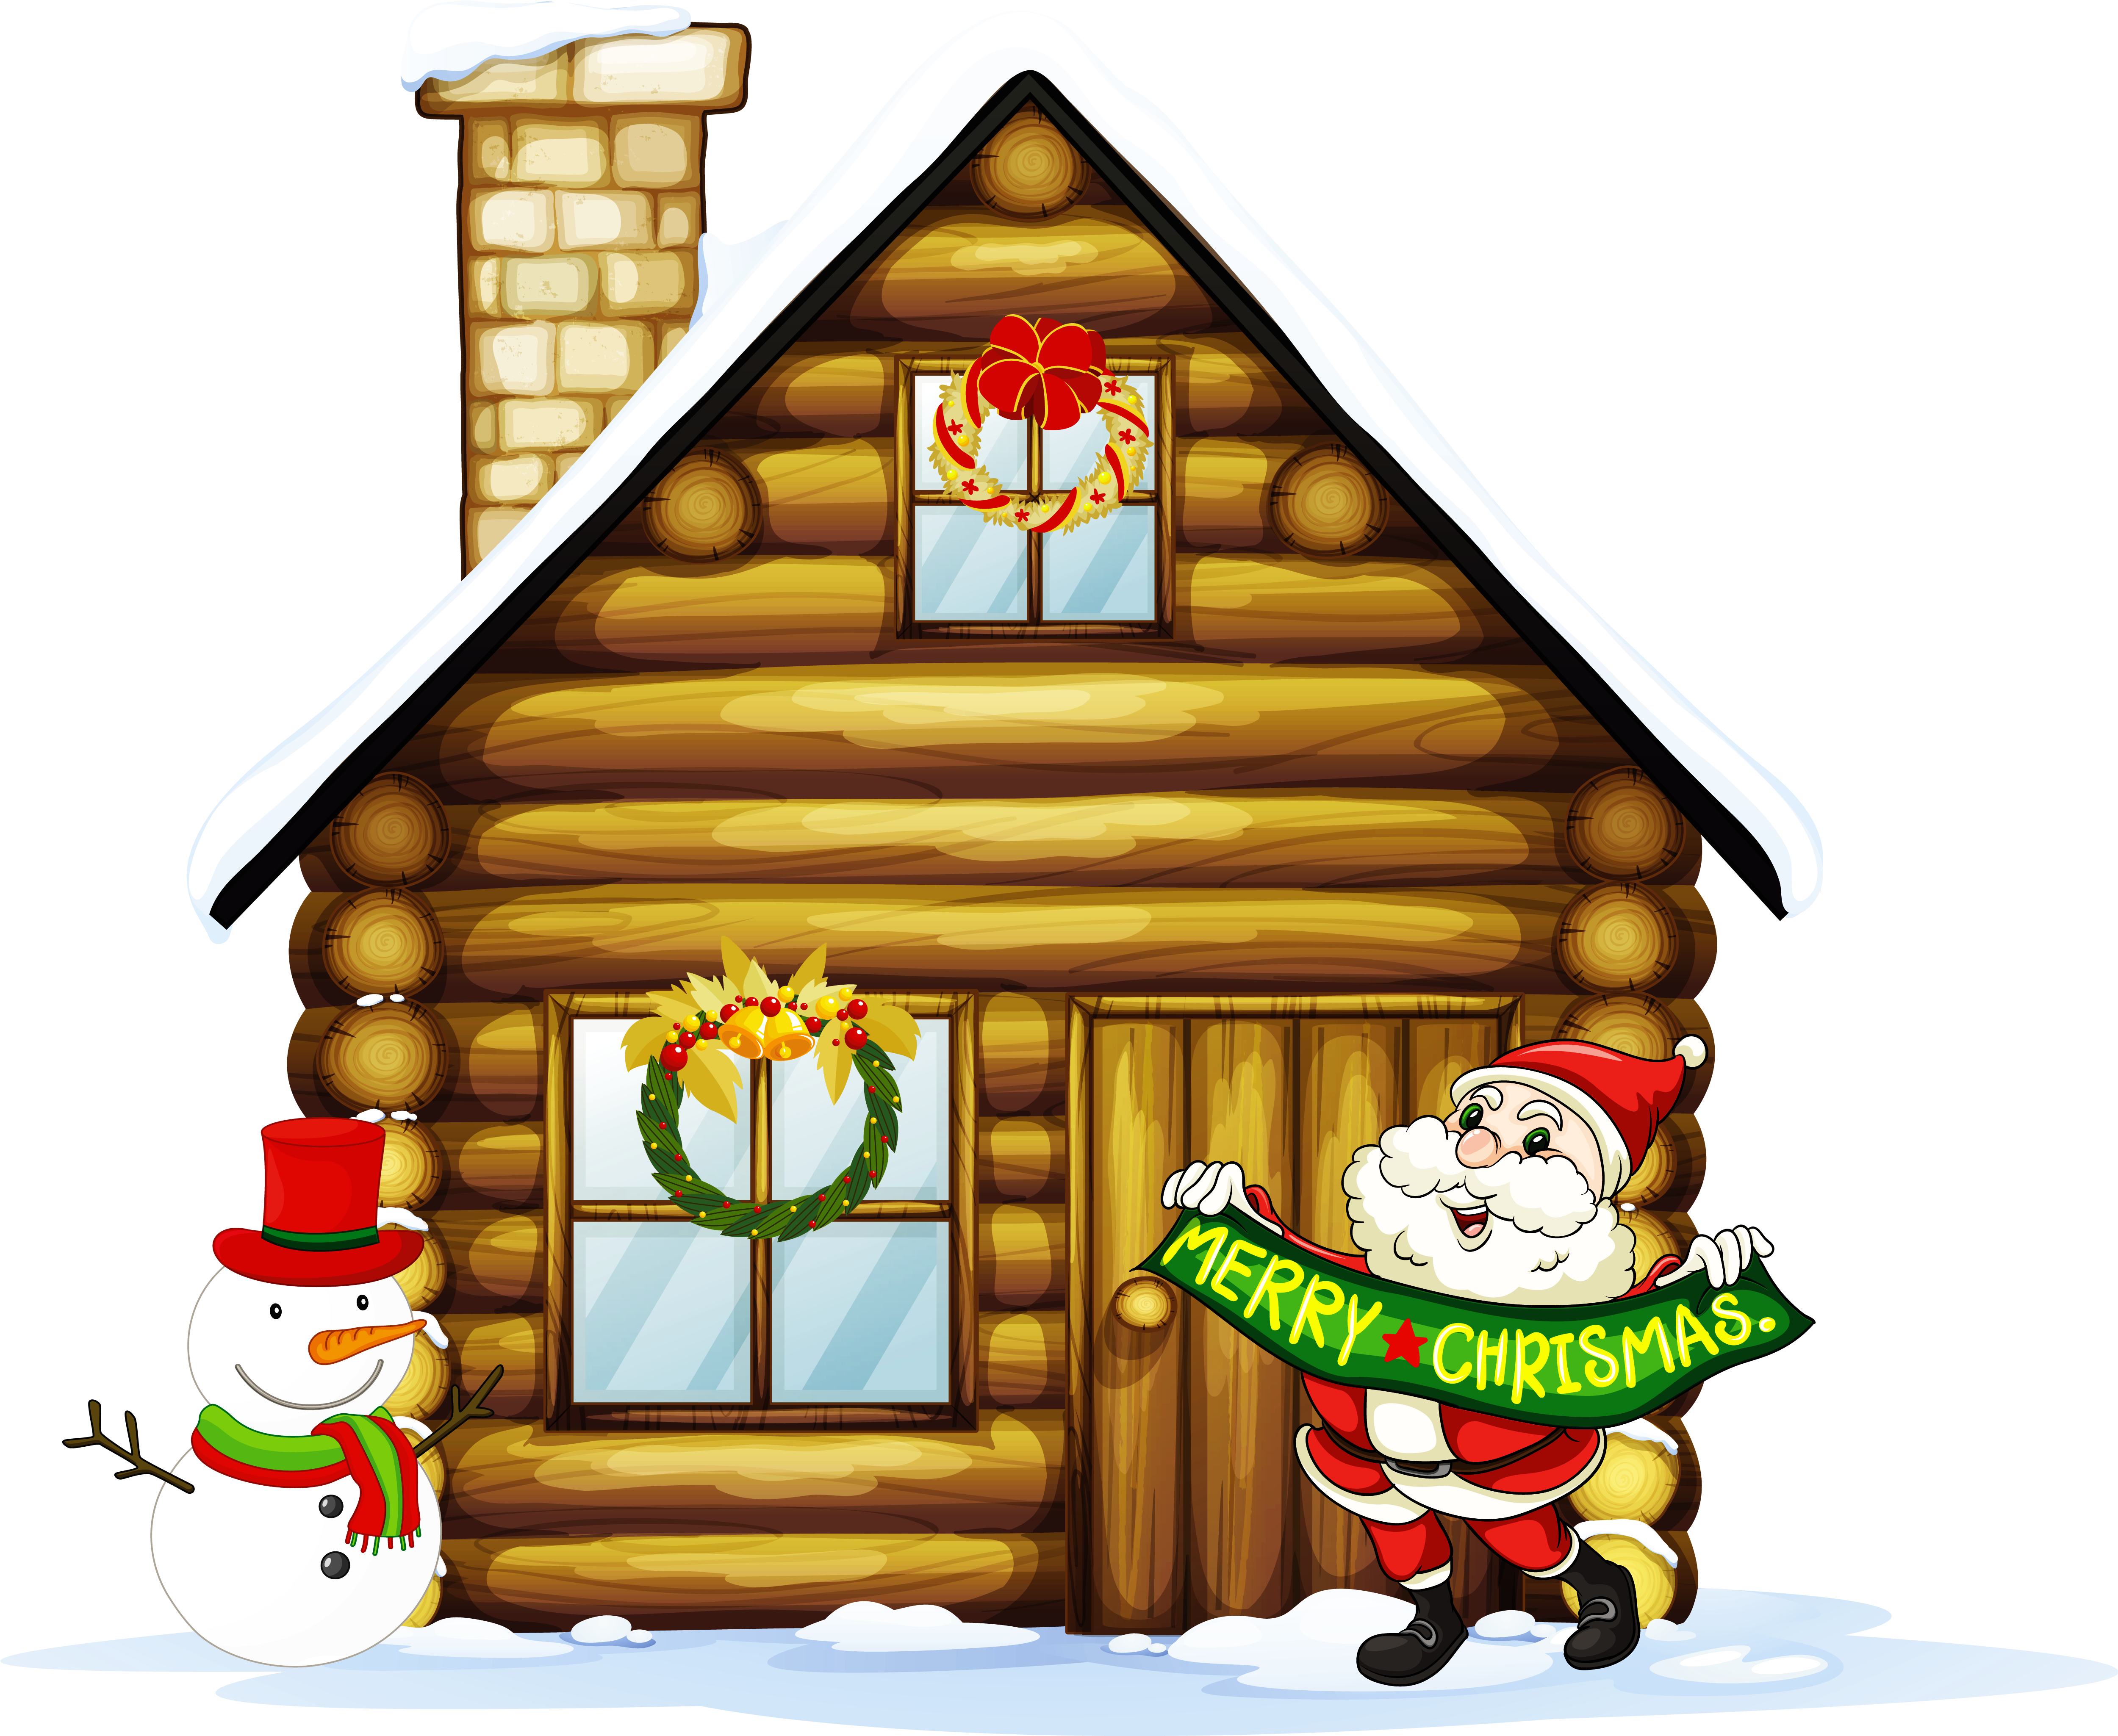 Clipart houses xmas, Clipart houses xmas Transparent FREE.